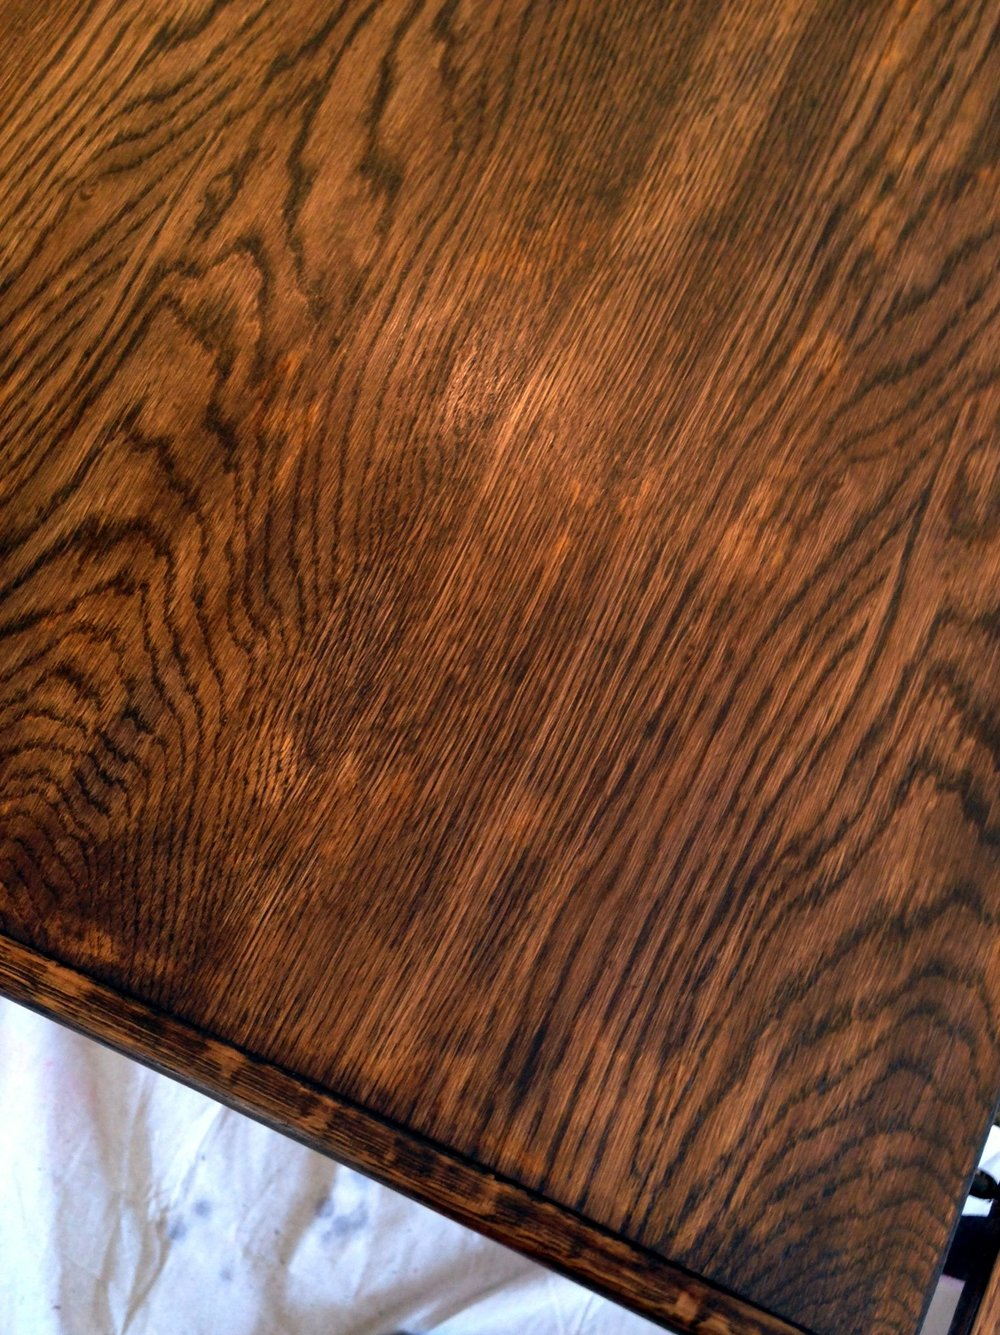 oak-table-turned-farmhouse-table-blotchy-finish.jpg